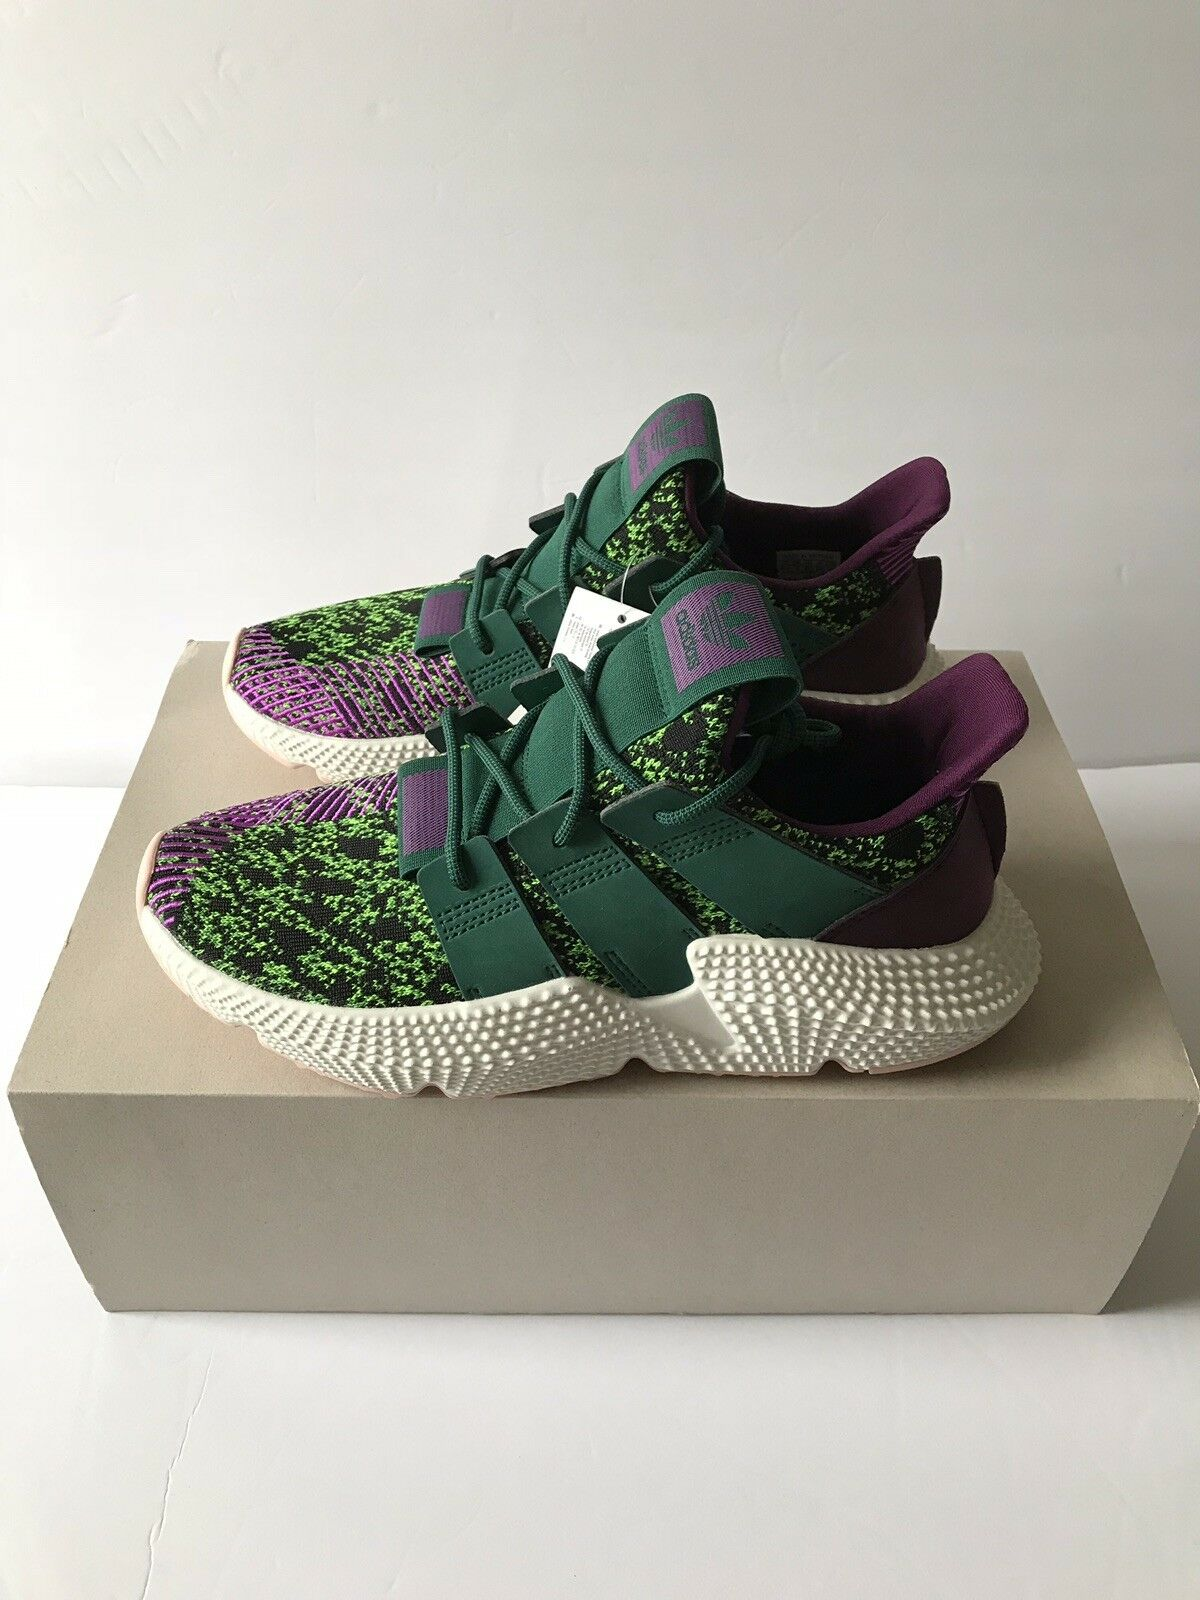 adidas Prophere Dragon Ball Z Cell SNEAKERS Size 6.5 D97053 Ships From USA